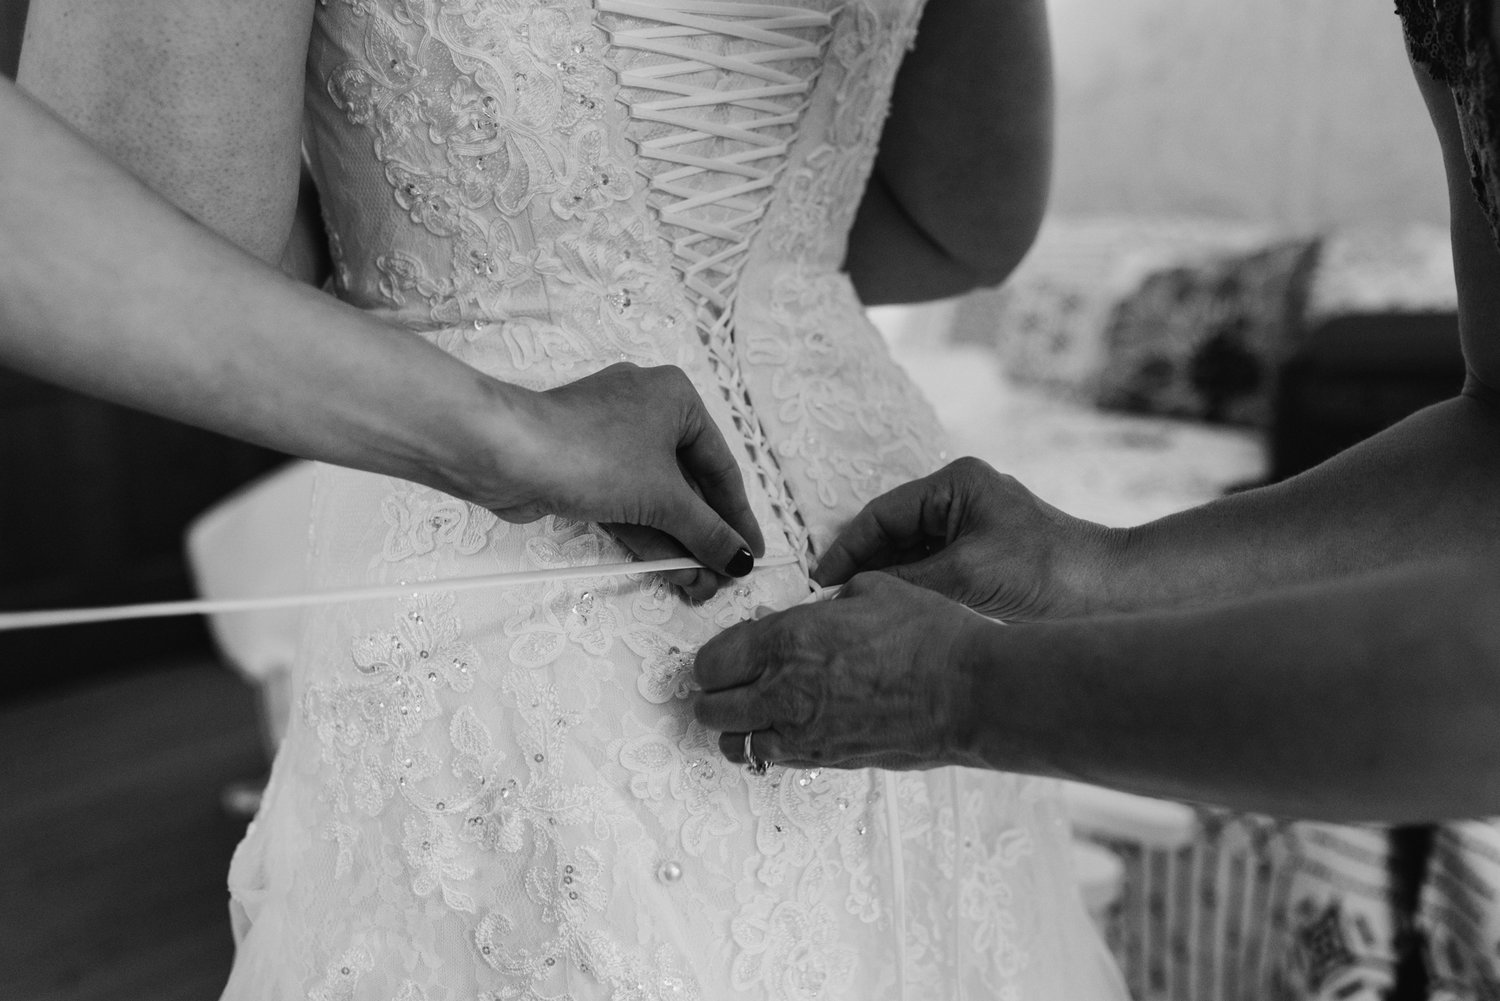 brides-dress-being-laced-up-43©_Elisabeth-Waller